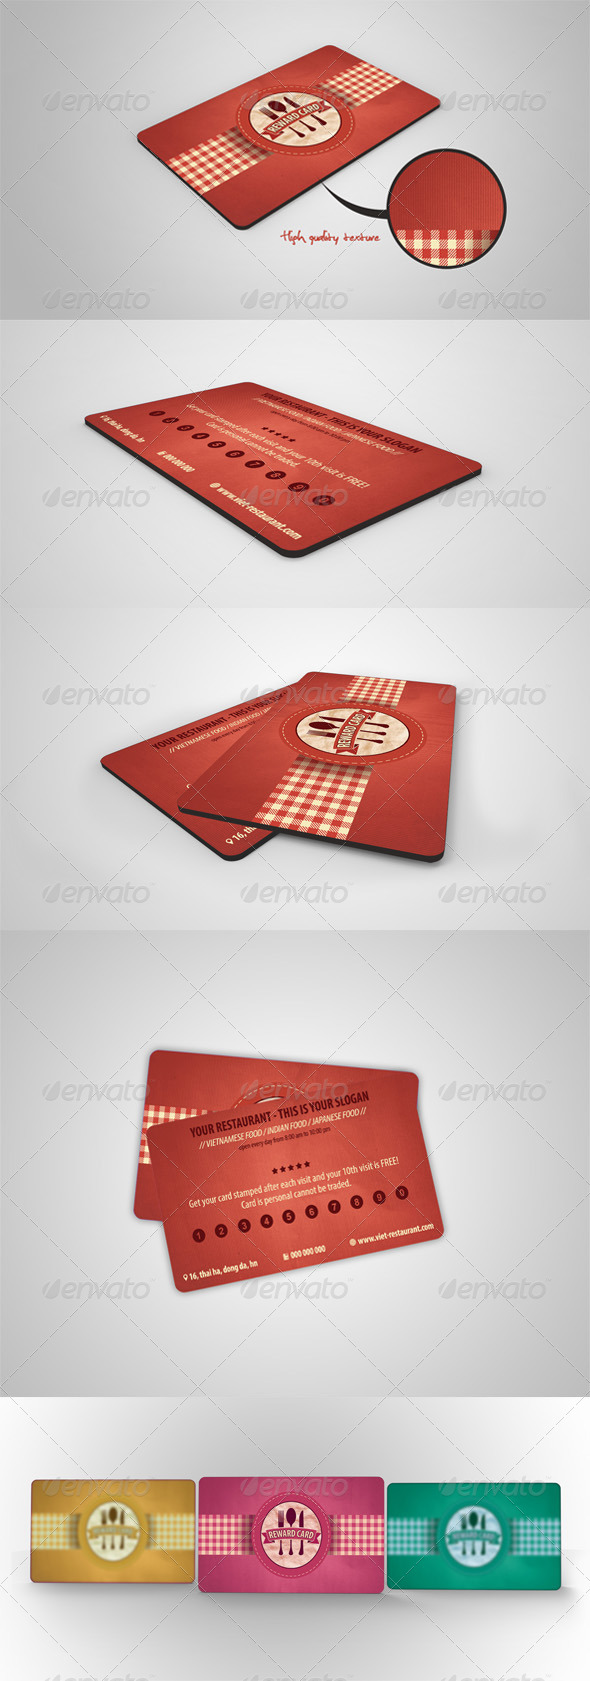 GraphicRiver Retro Restaurant Vip Card 4167835